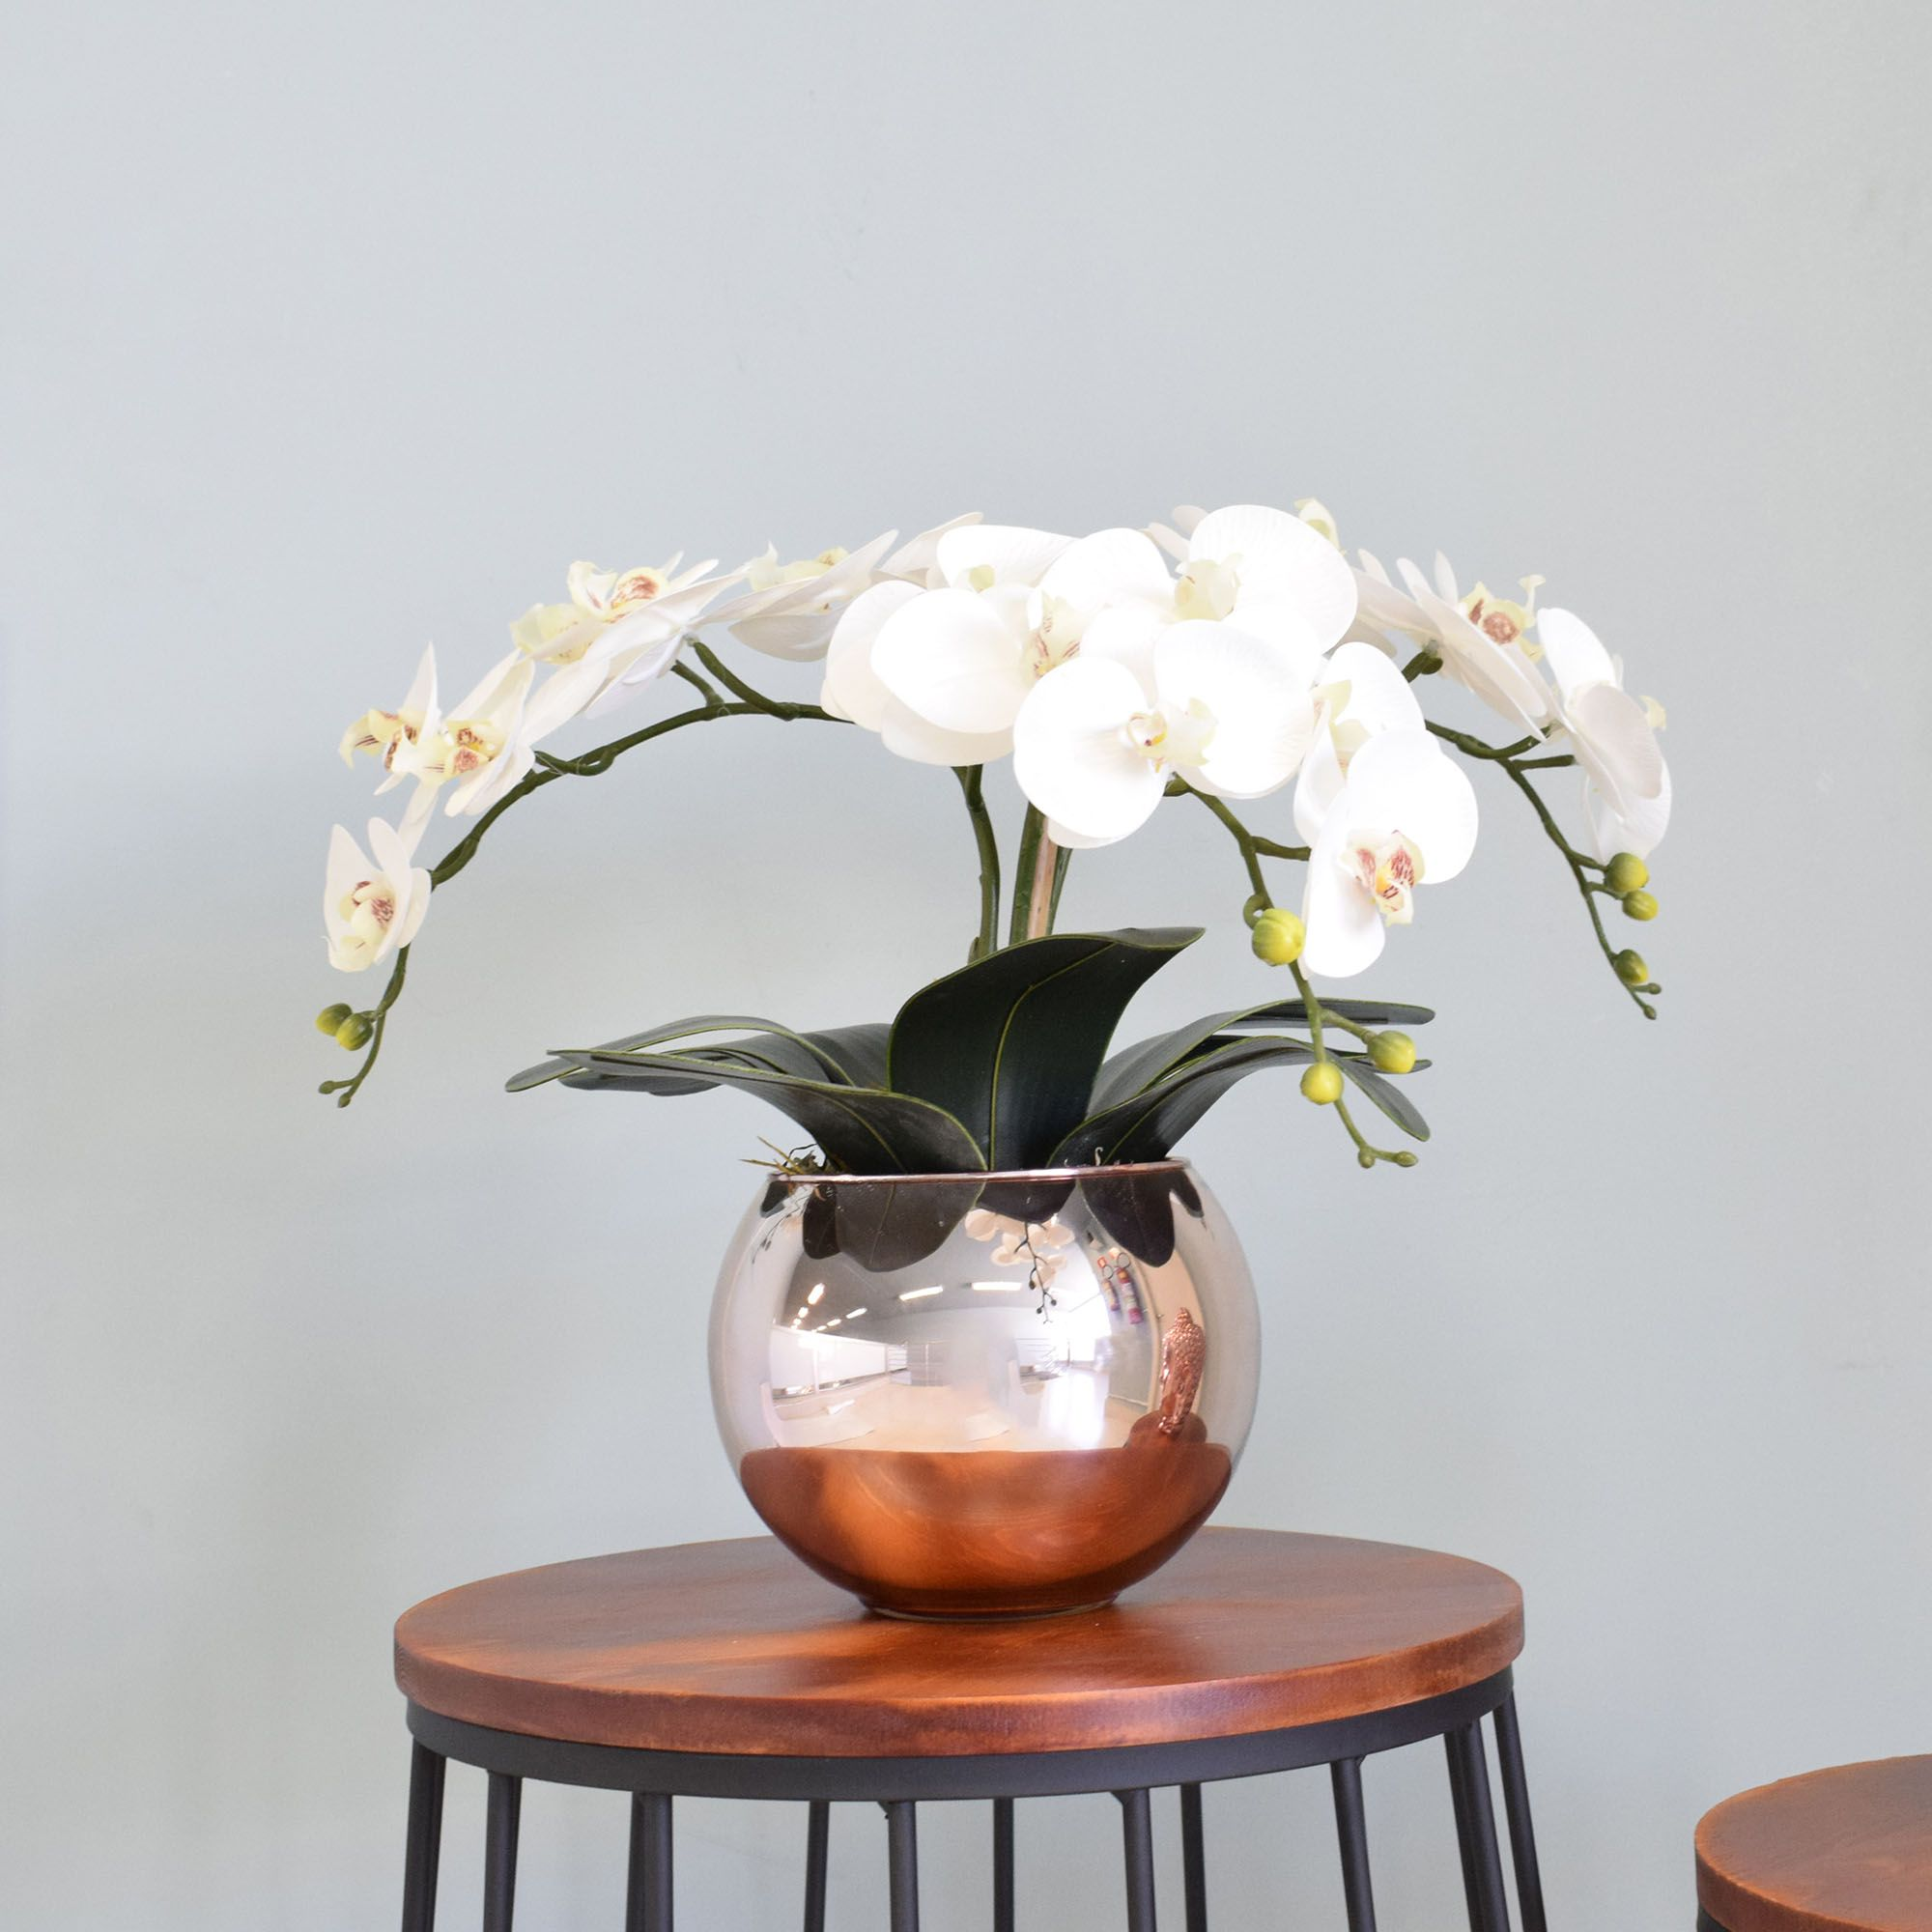 Flores artificiais Arranjo de Orquídeas Branco no Vaso Rose Gold